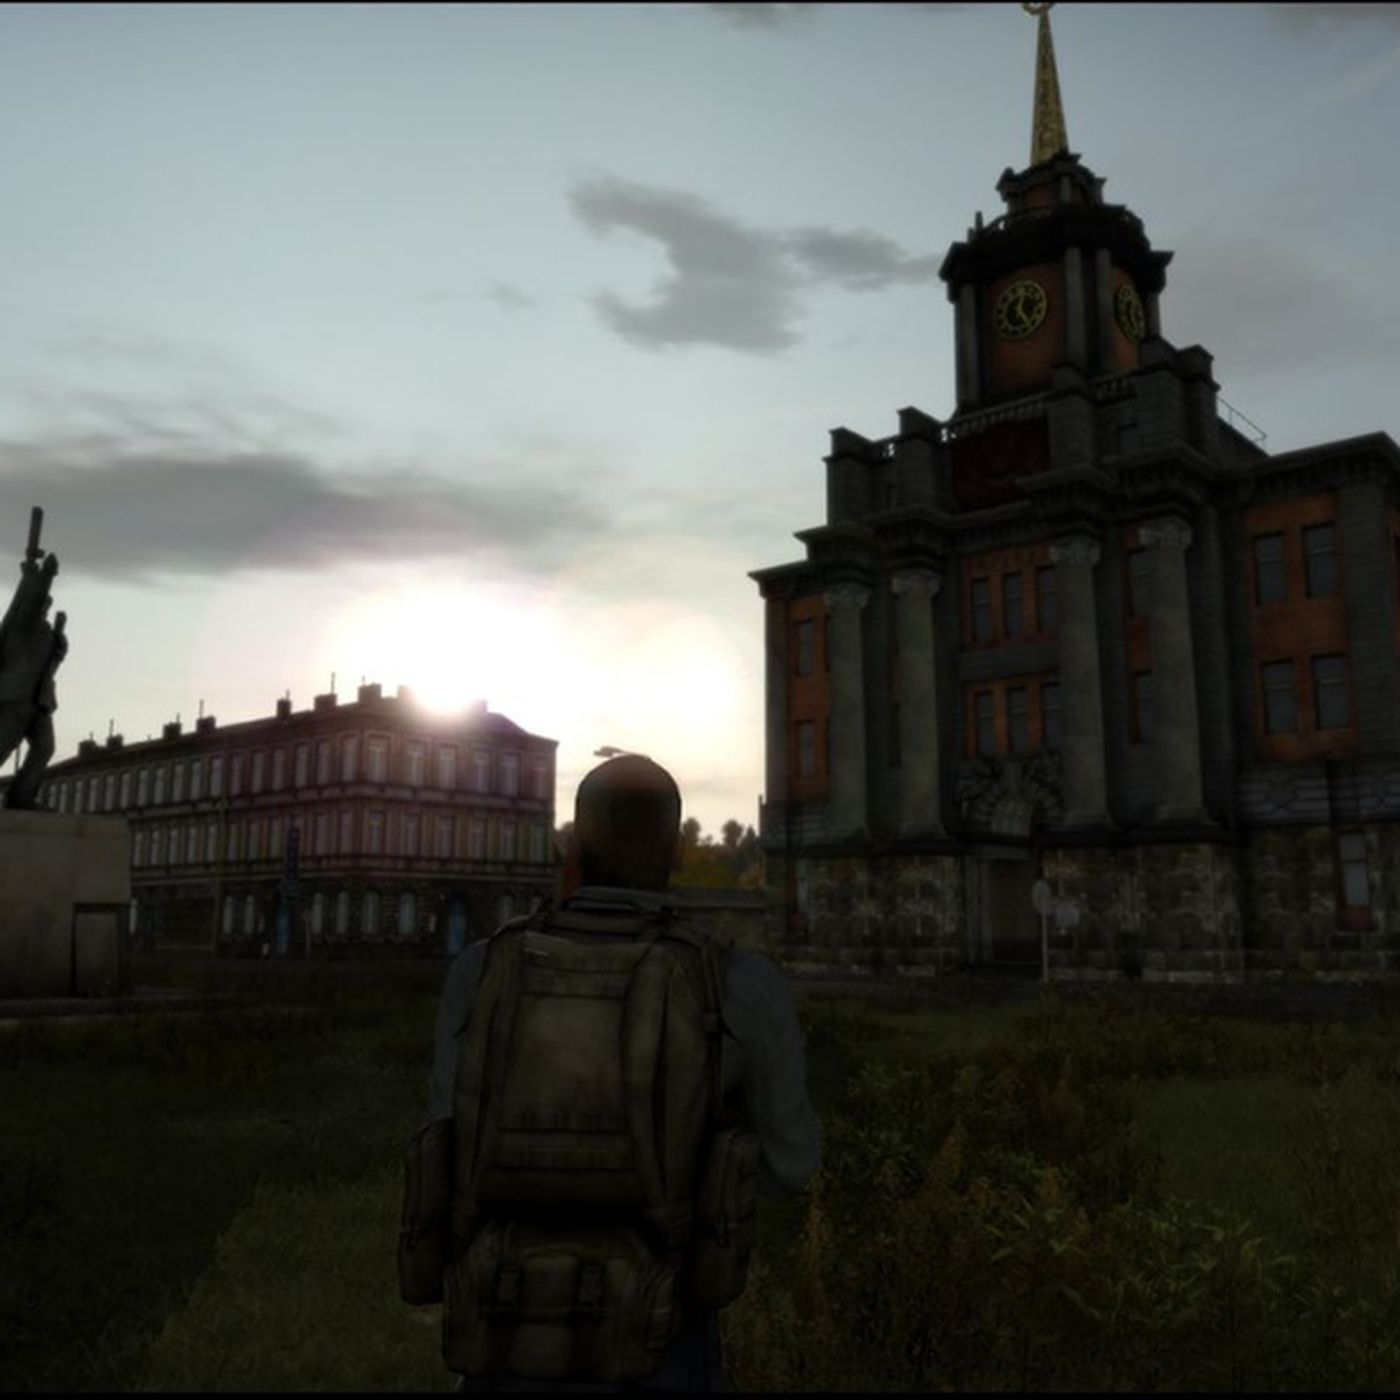 DayZ standalone may be pushed to 2013 due to major engine